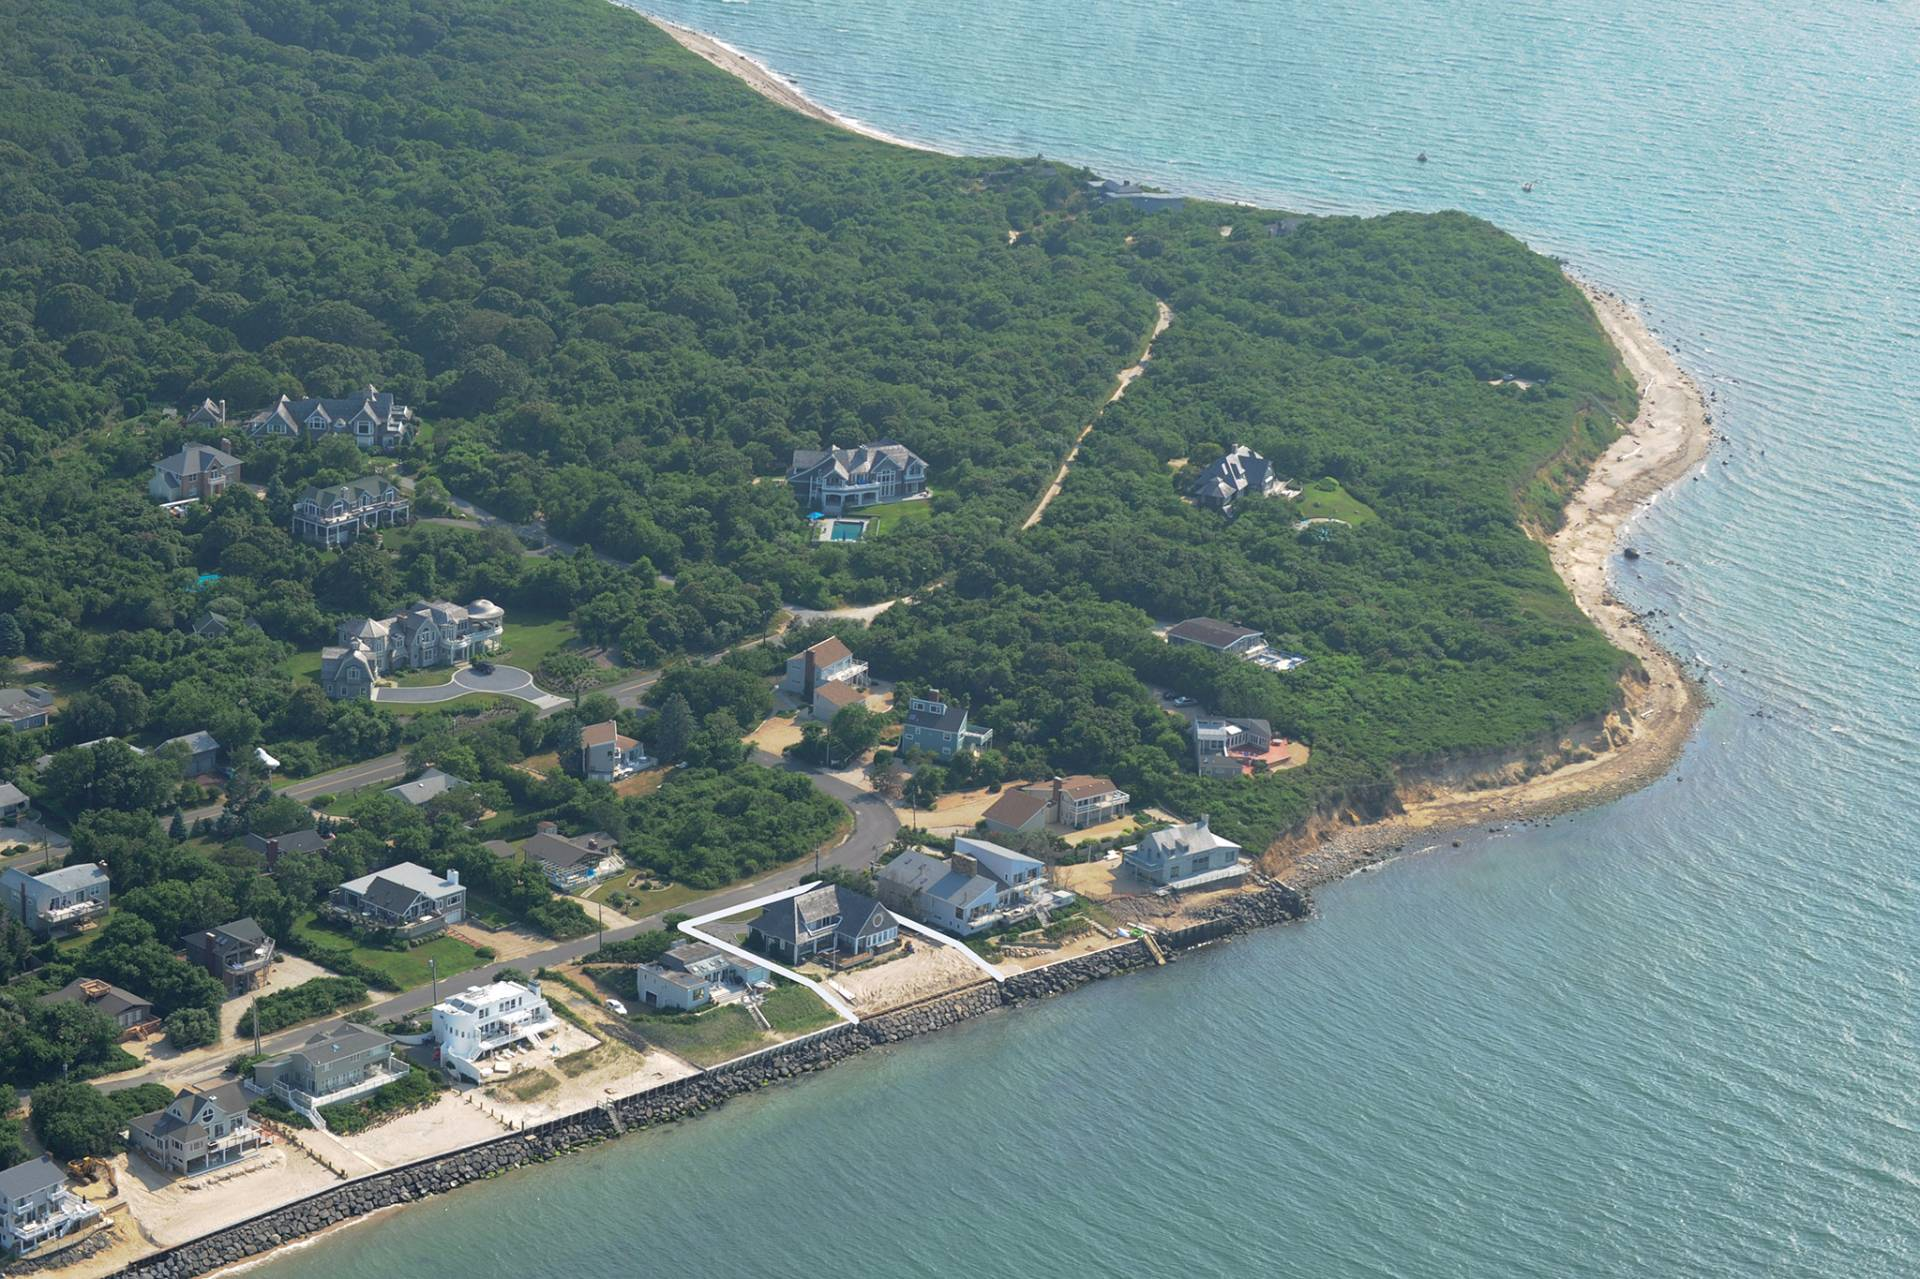 Single Family Home for Sale at Magnificent Waterfront In Montauk 32 Captain Kidds Path, Montauk, New York